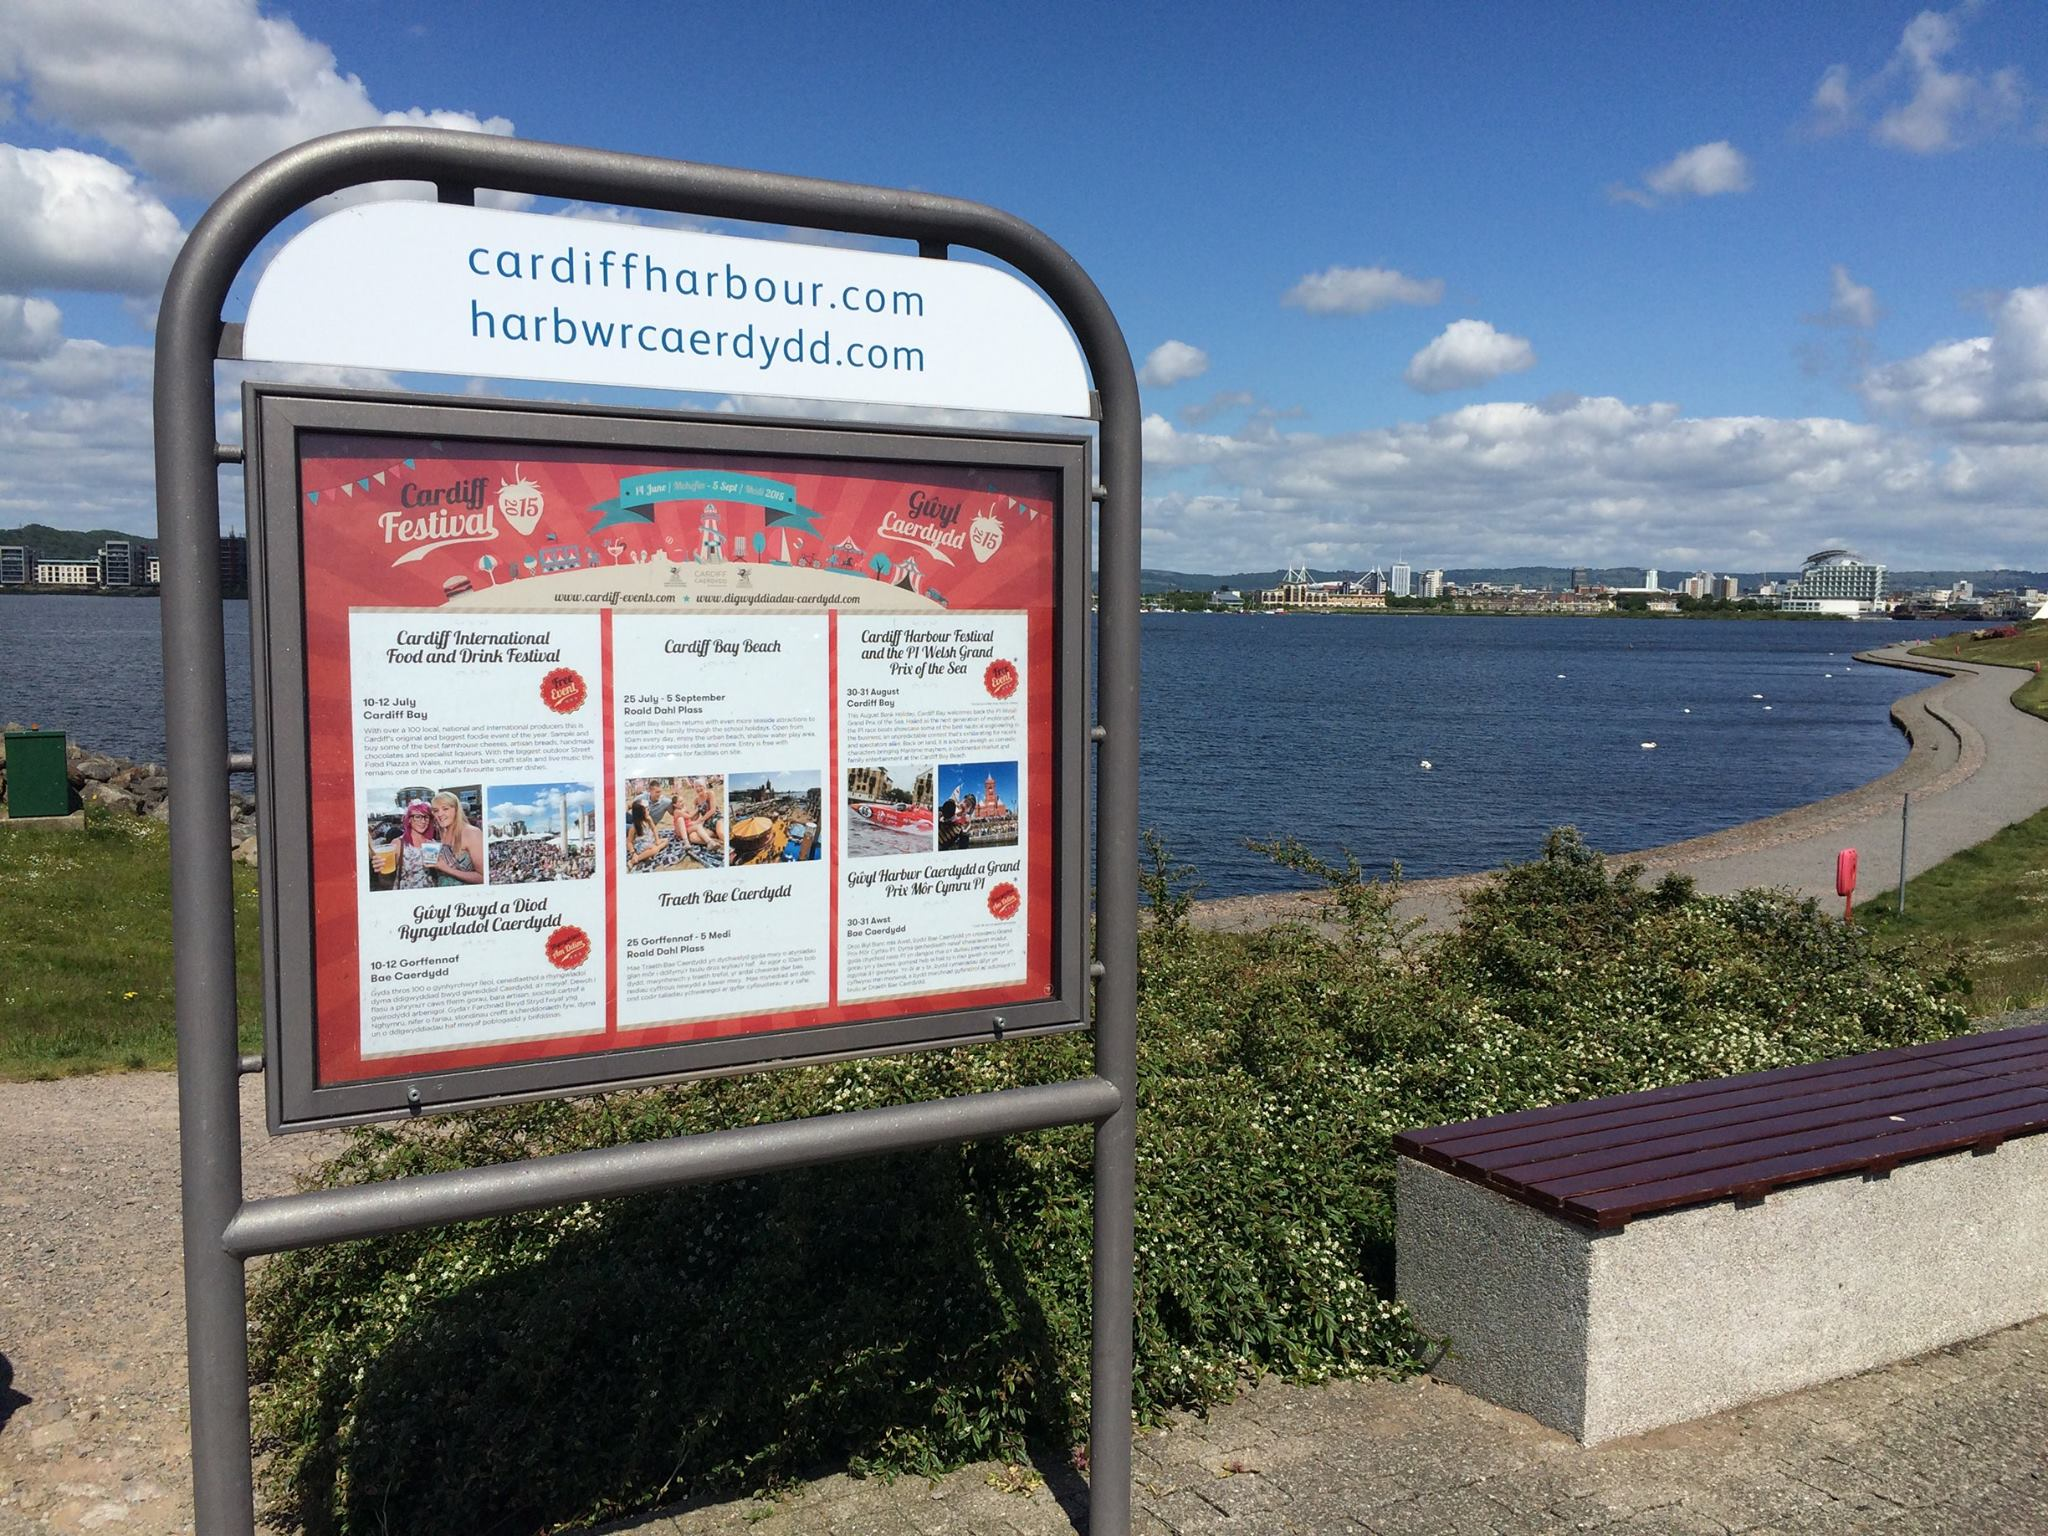 Cardiff-harbour-exterior-signs.jpg